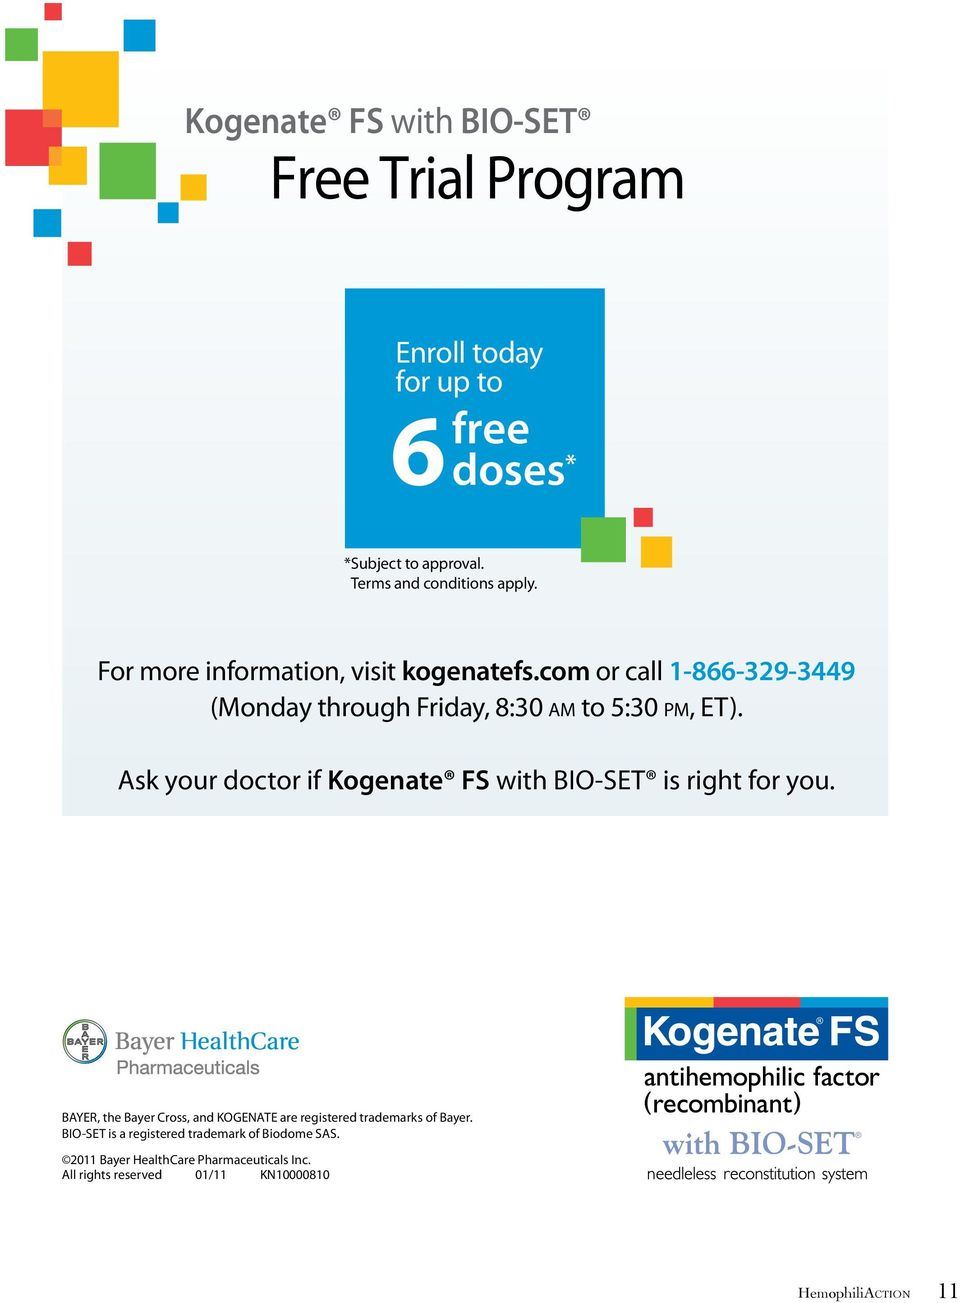 com or call 1-866-329-3449 (Monday through Friday, 8:30 am to 5:30 pm, ET). Ask your doctor if Kogenate FS with BIO-SET is right for you.